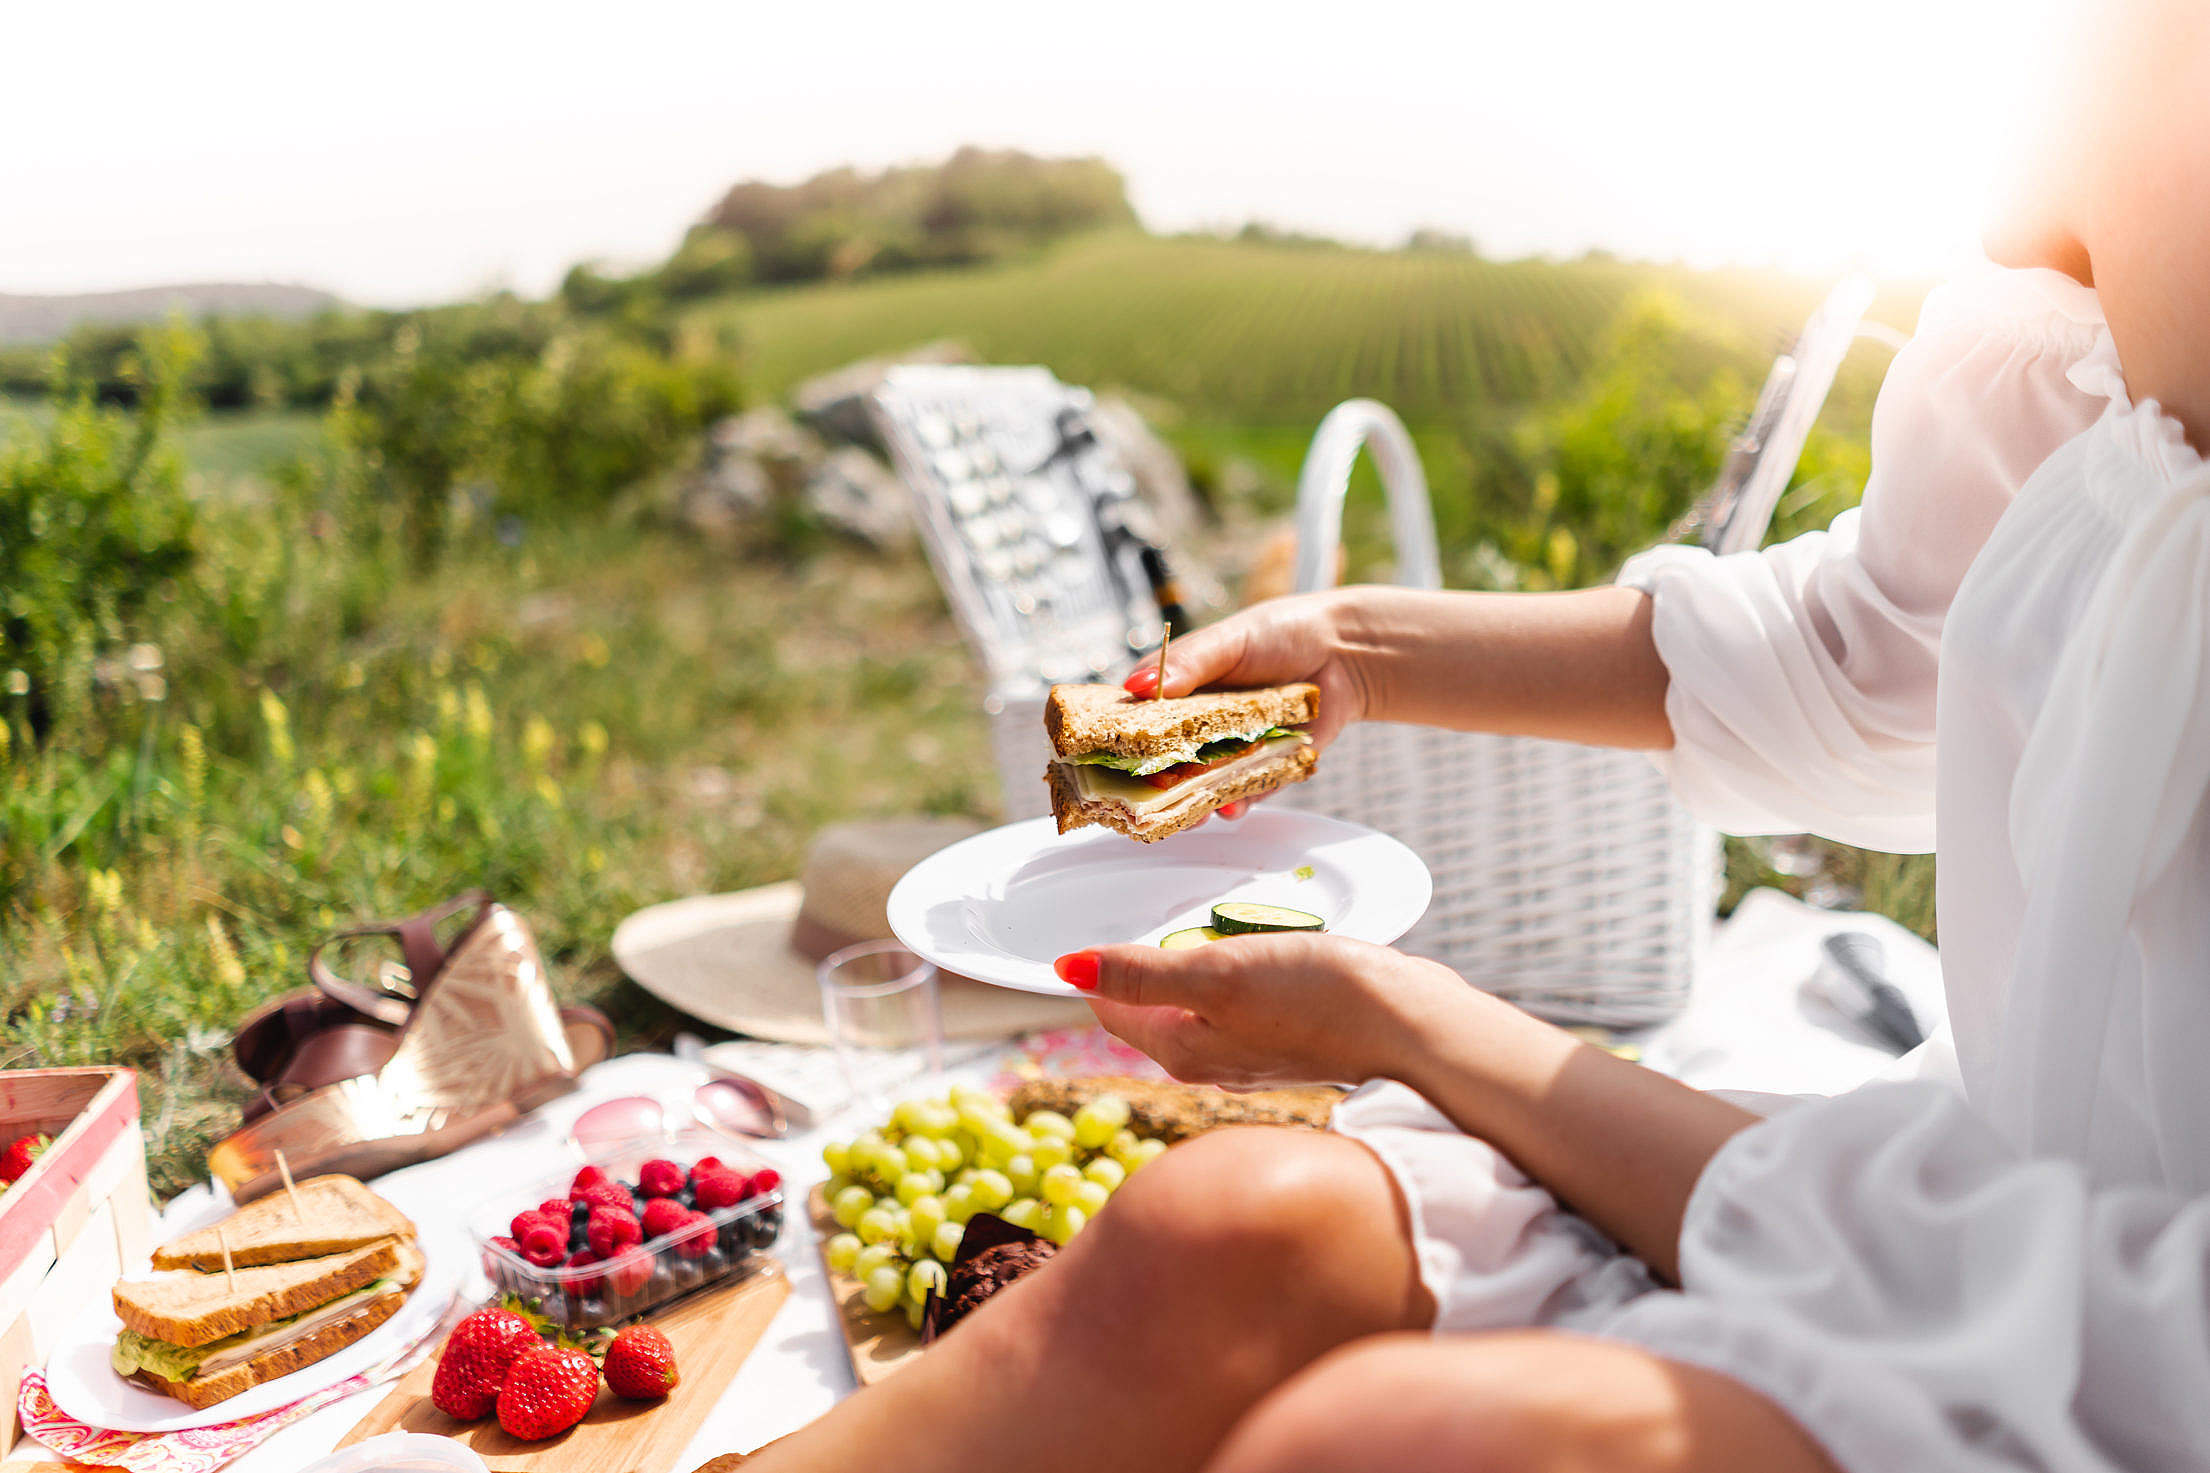 Eating Sandwich at a Picnic Free Stock Photo